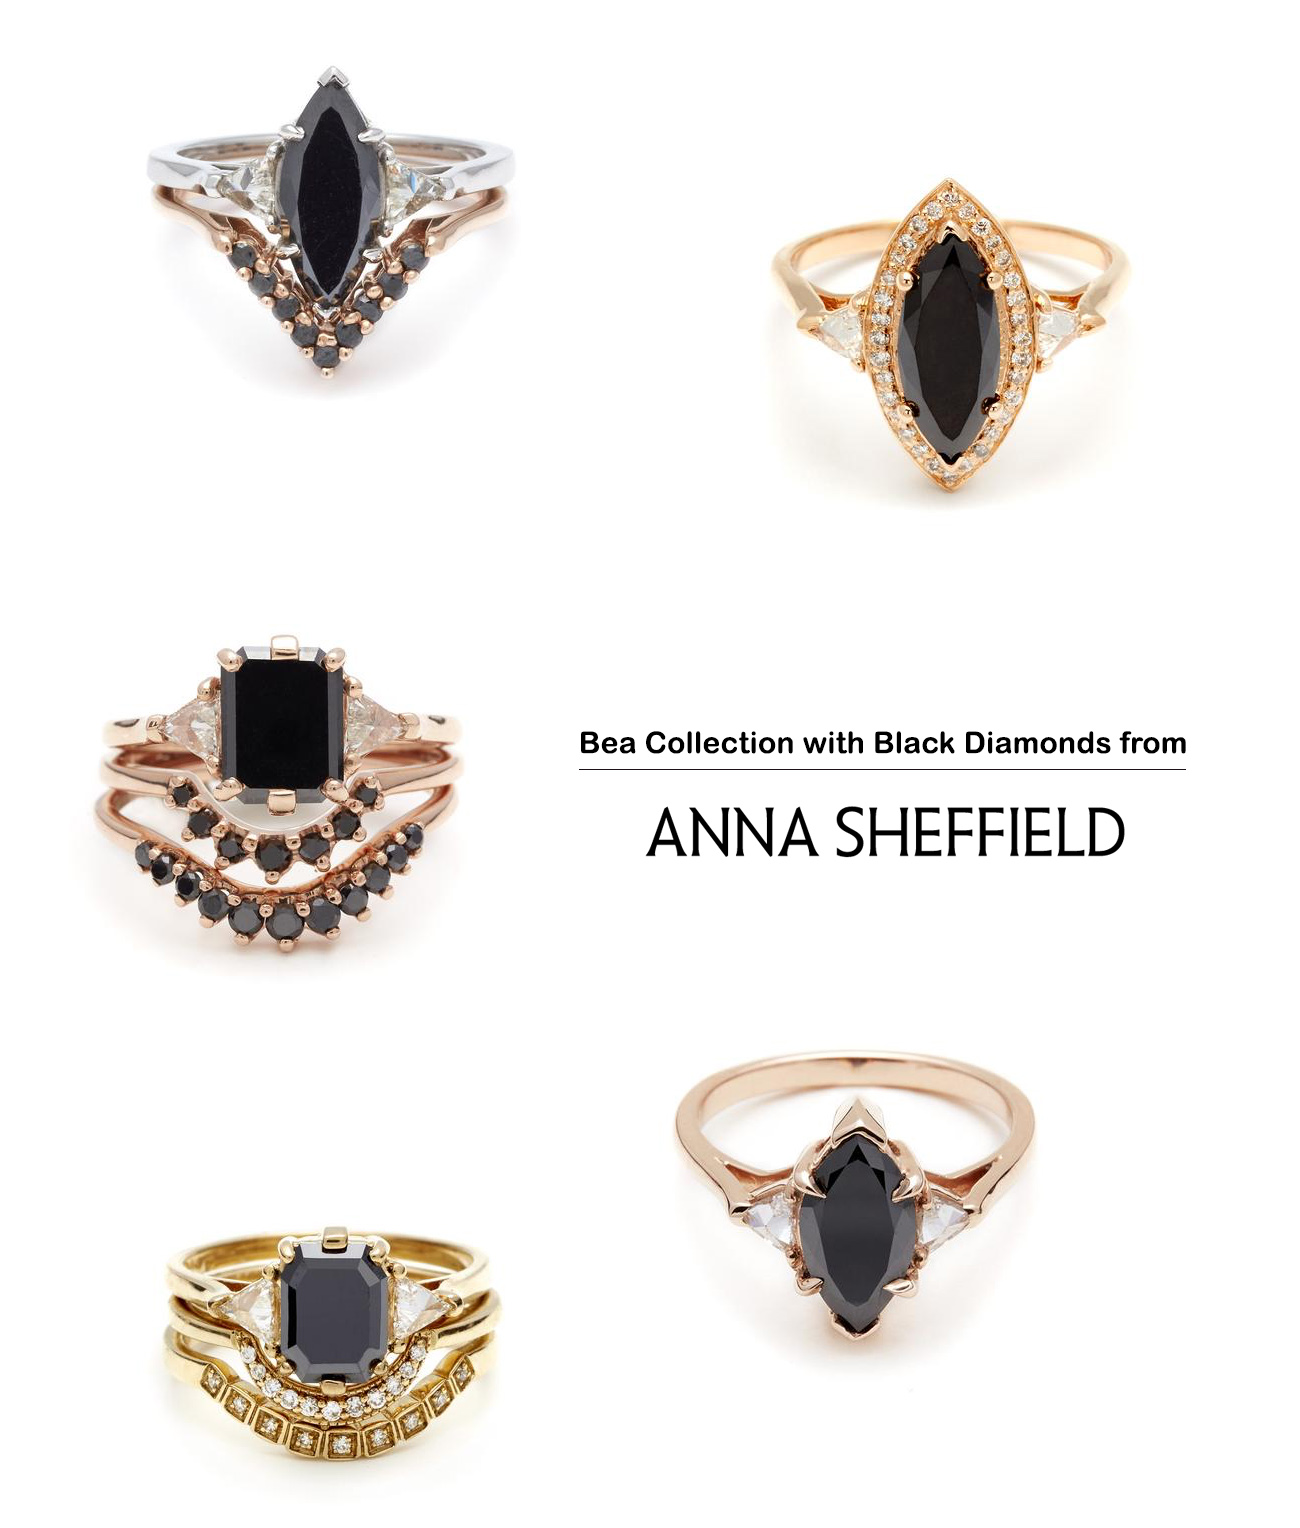 Anna Sheffield engagement rings with black diamonds